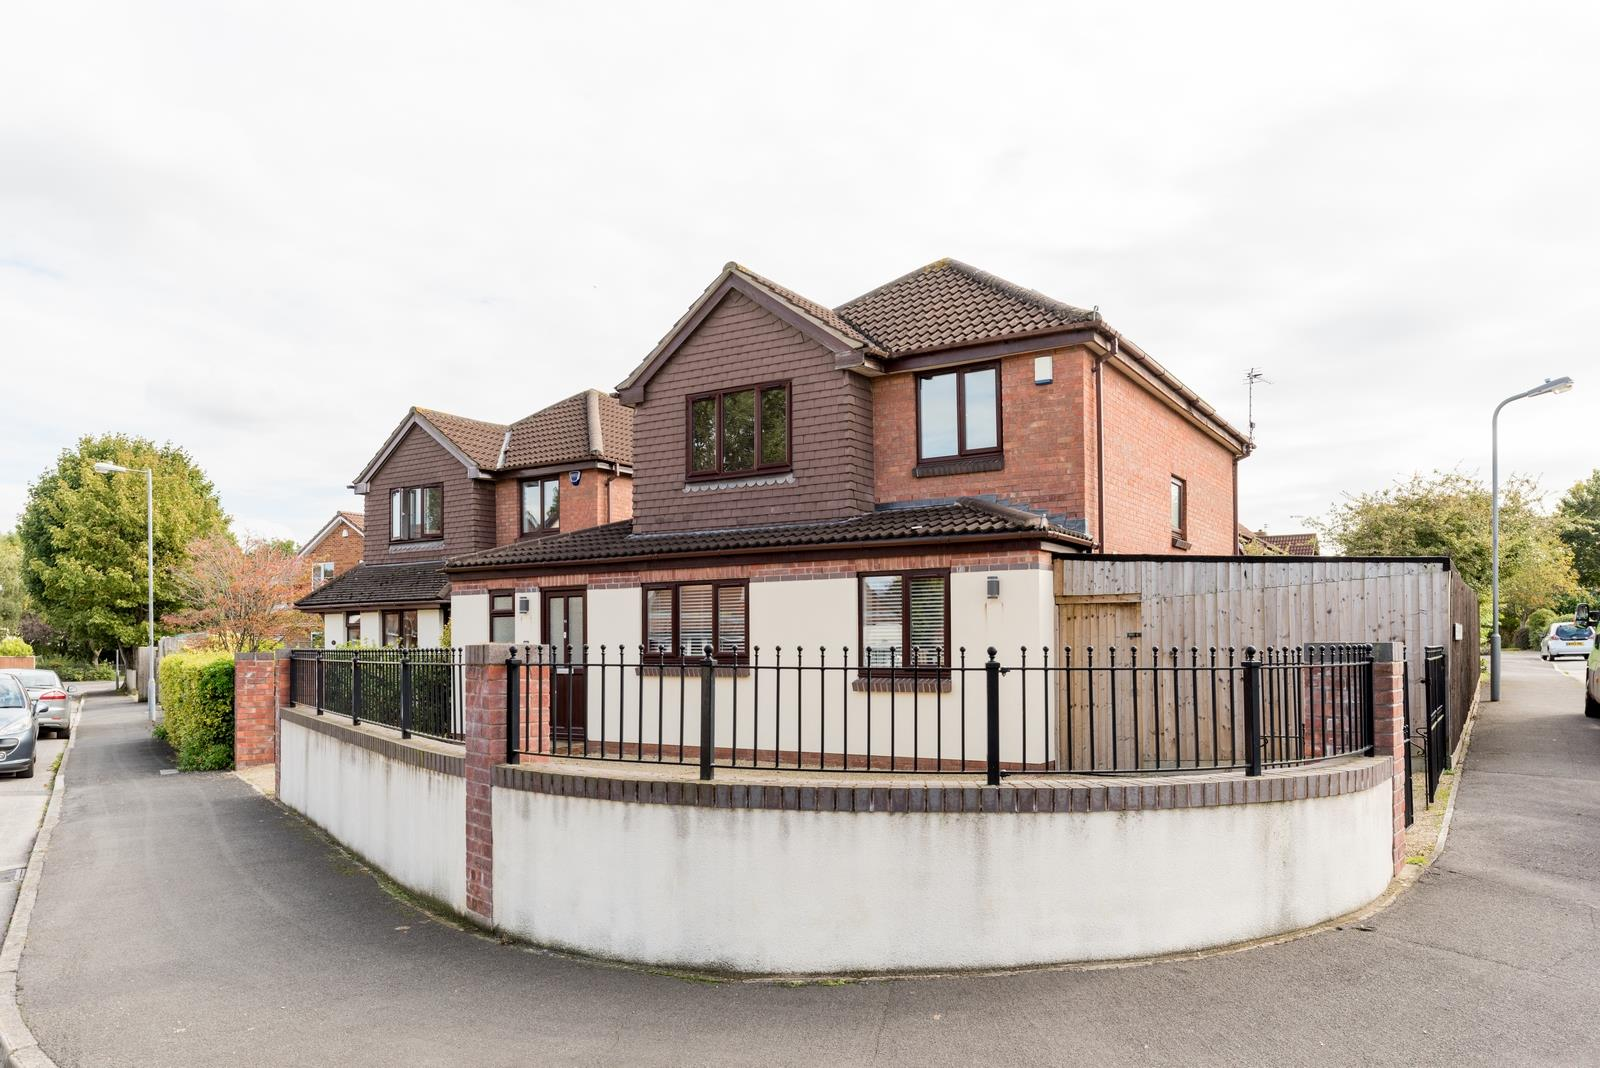 3 bed house for sale in Fallodon Way, Bristol 15